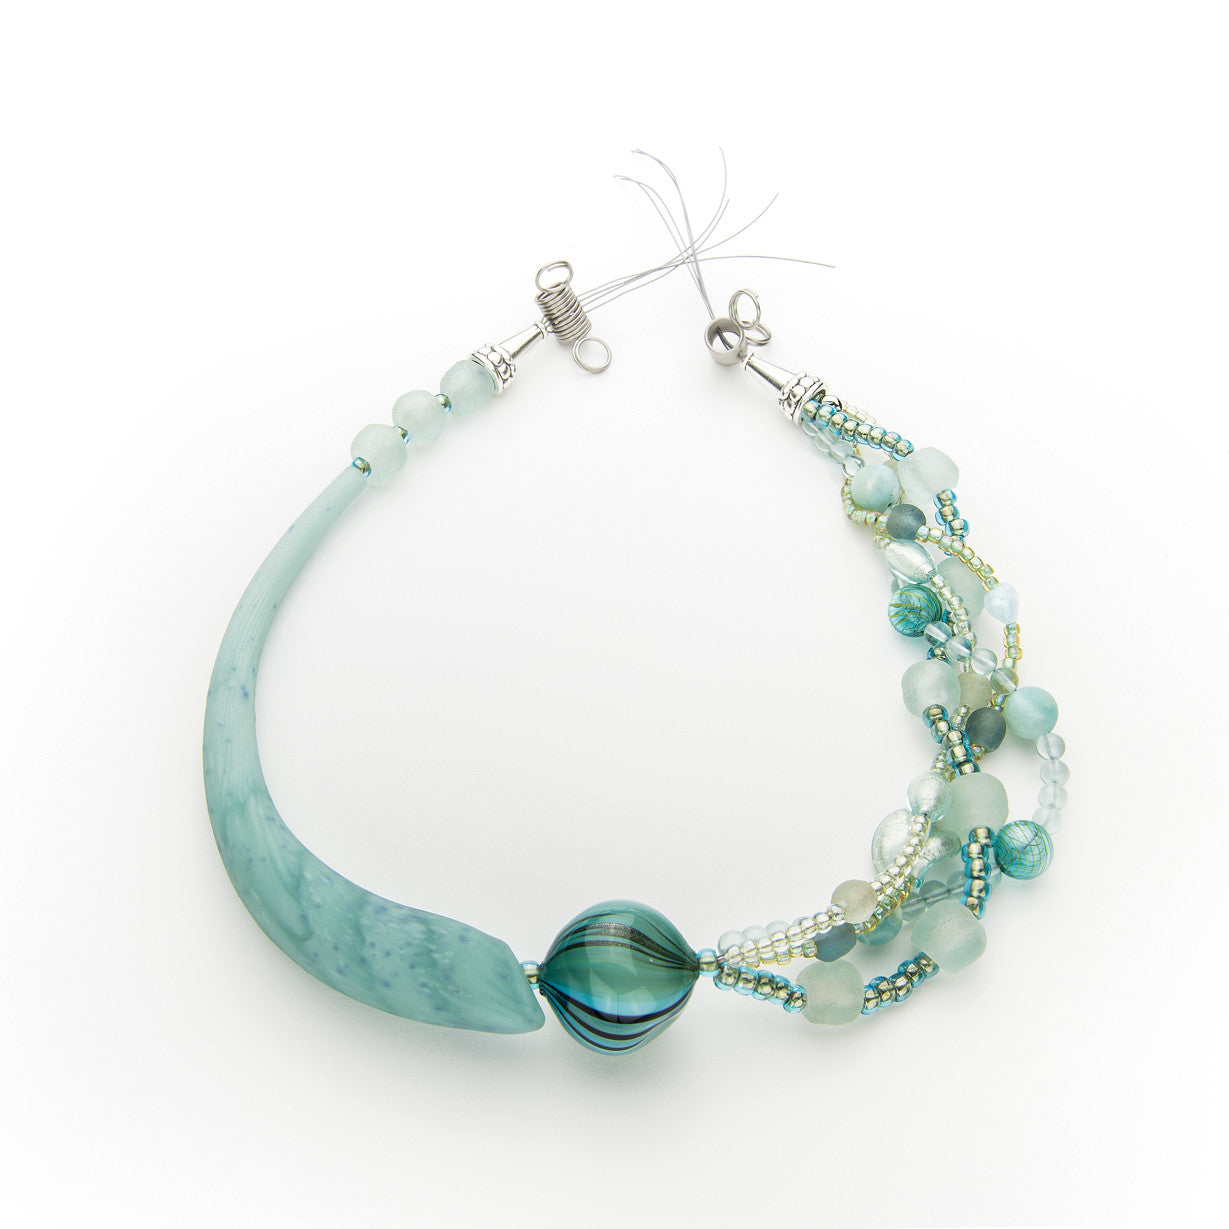 Nesoi - Aqua Choker Necklace